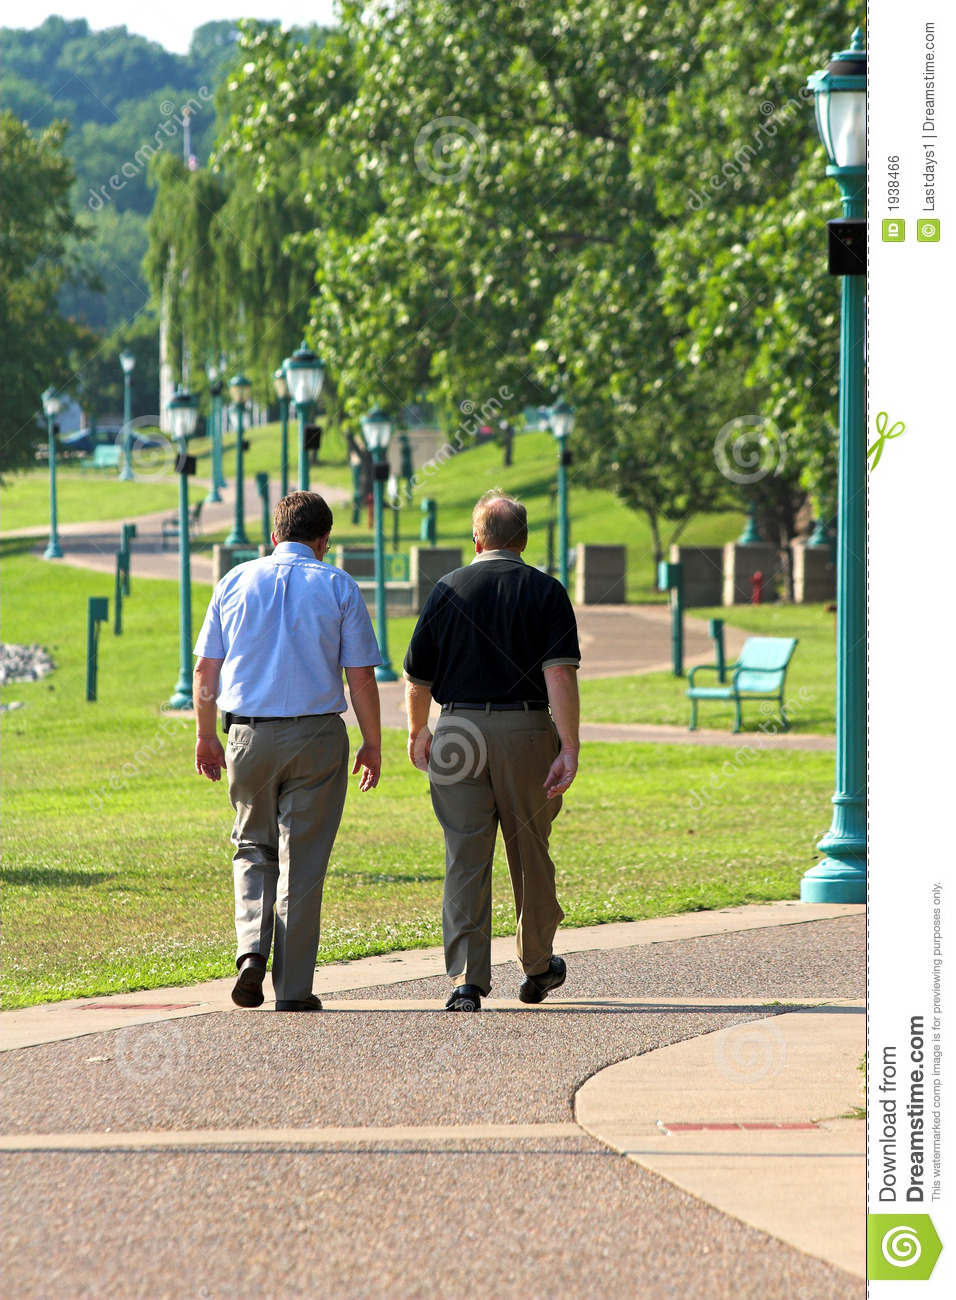 Only Metaphor >> Two Men Walking stock photo. Image of blue, busy, body - 1938466